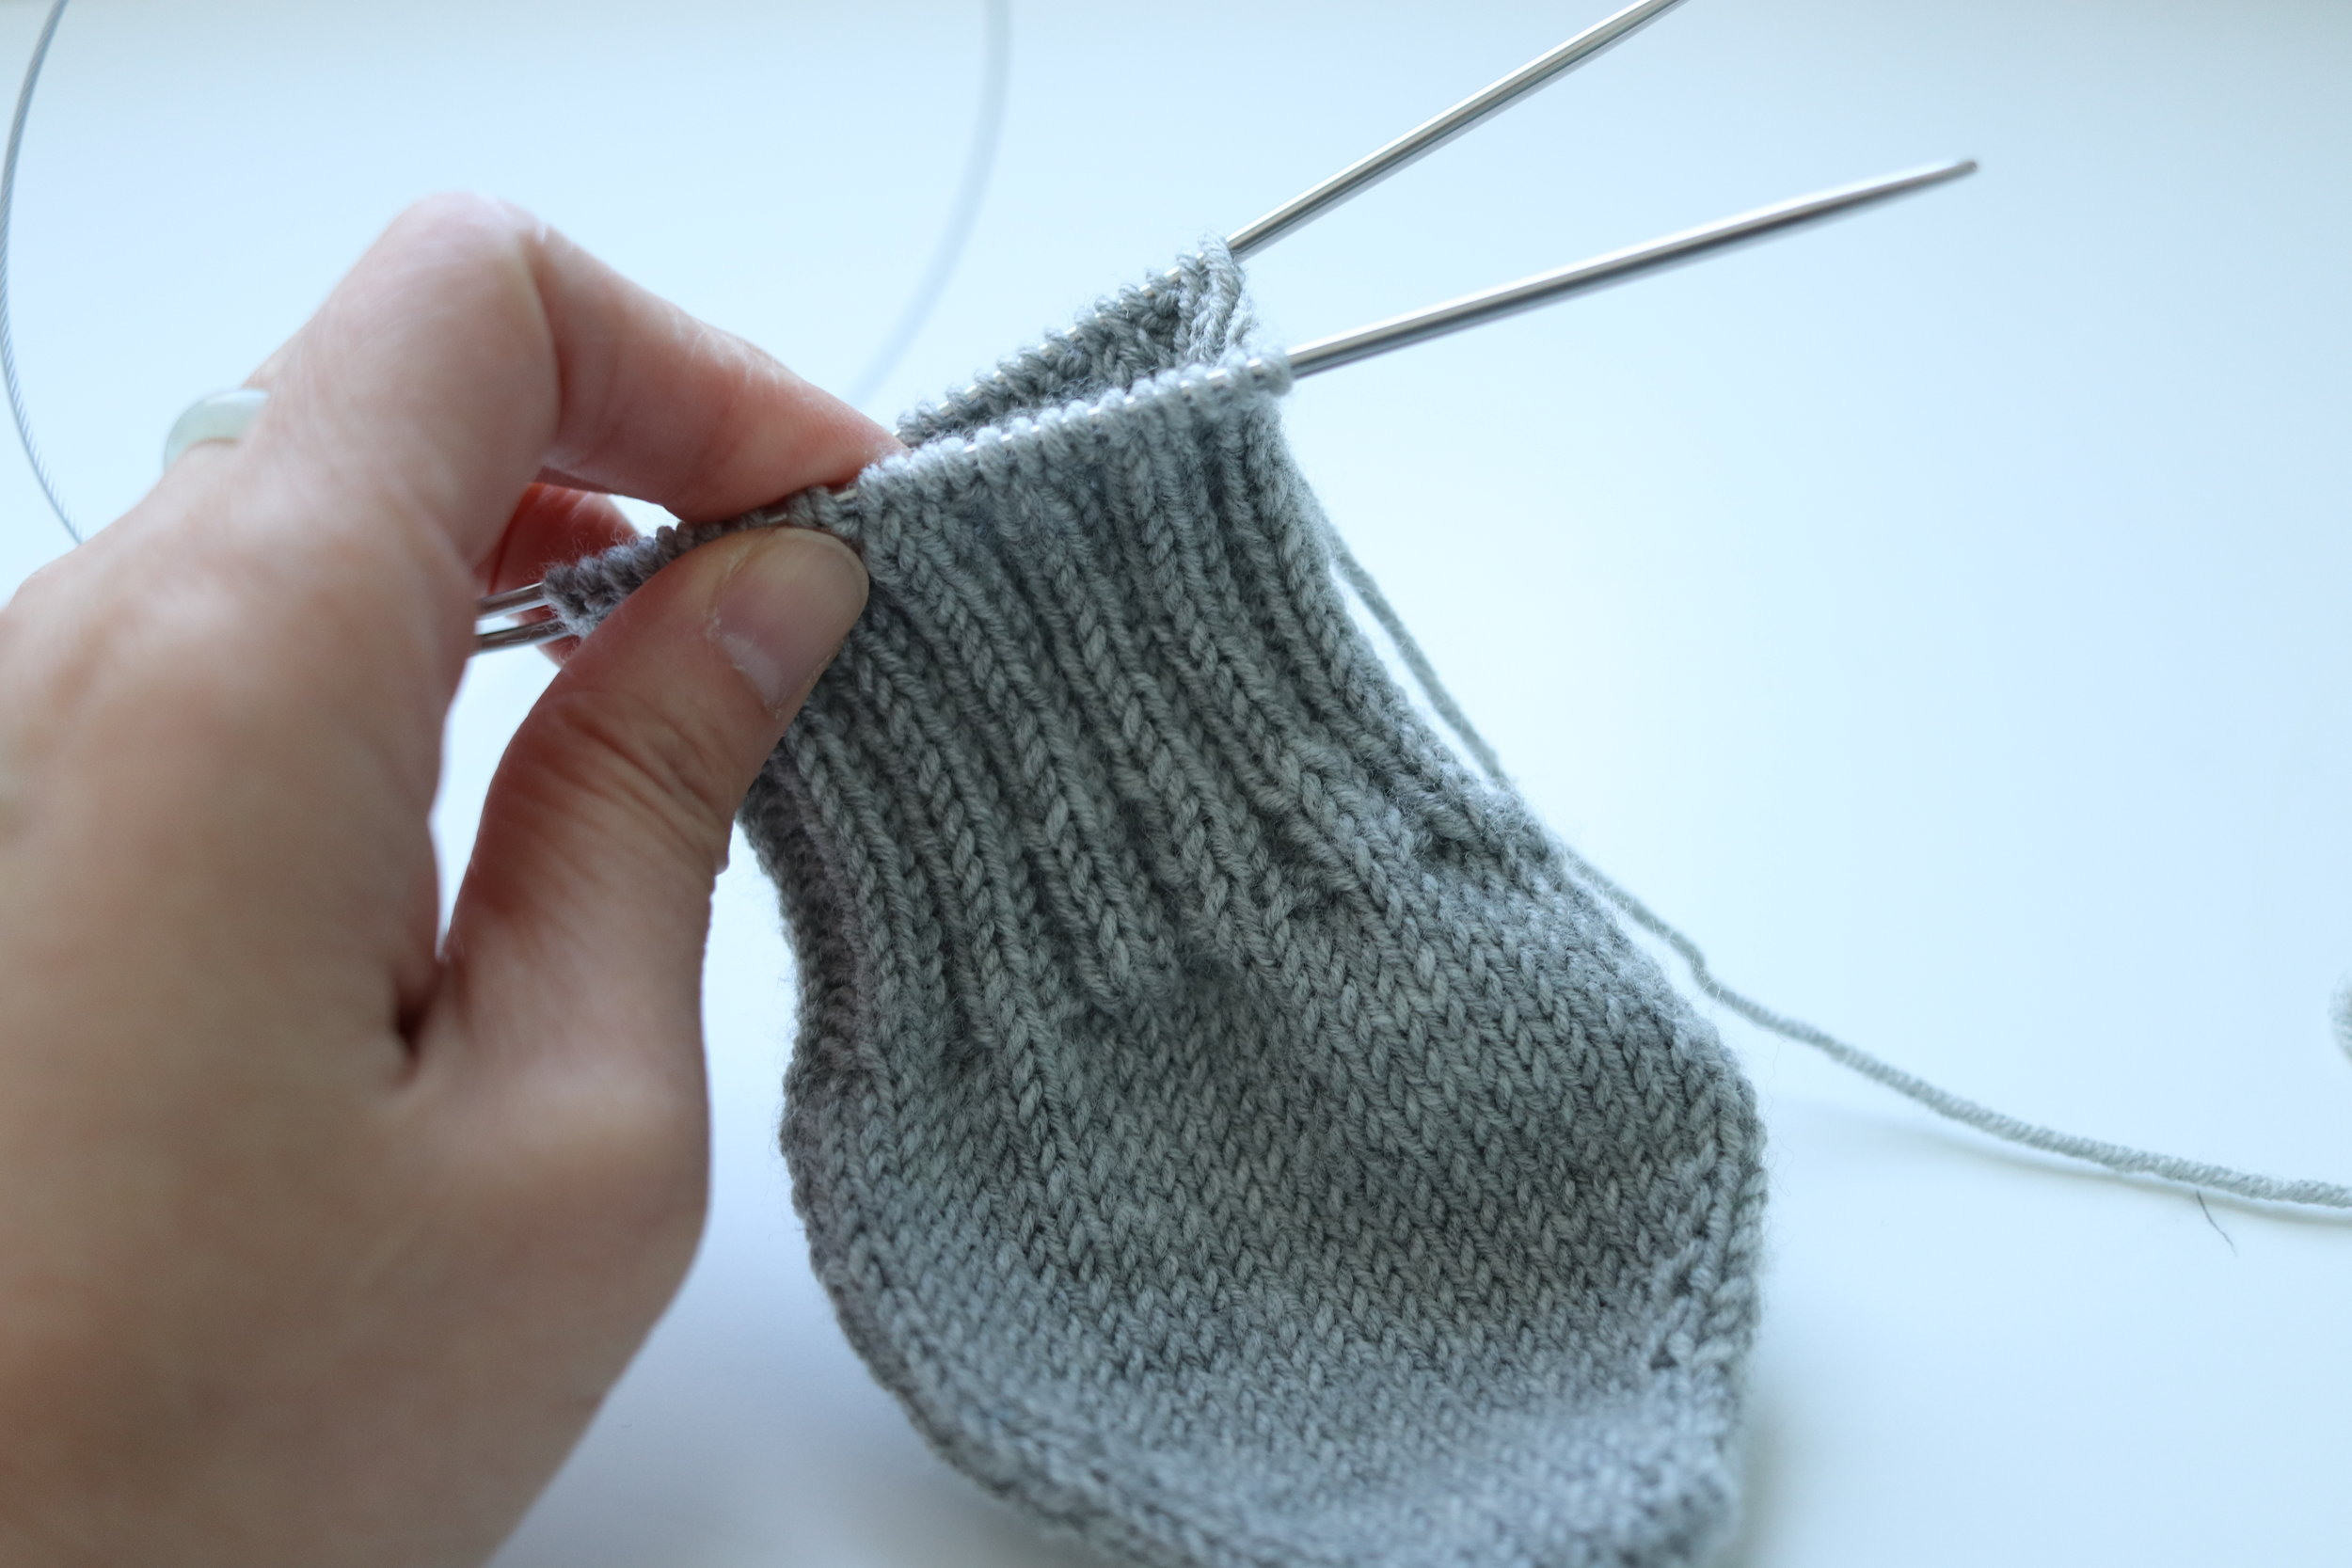 Socks knitting with ribbing in the middle part of the foot.